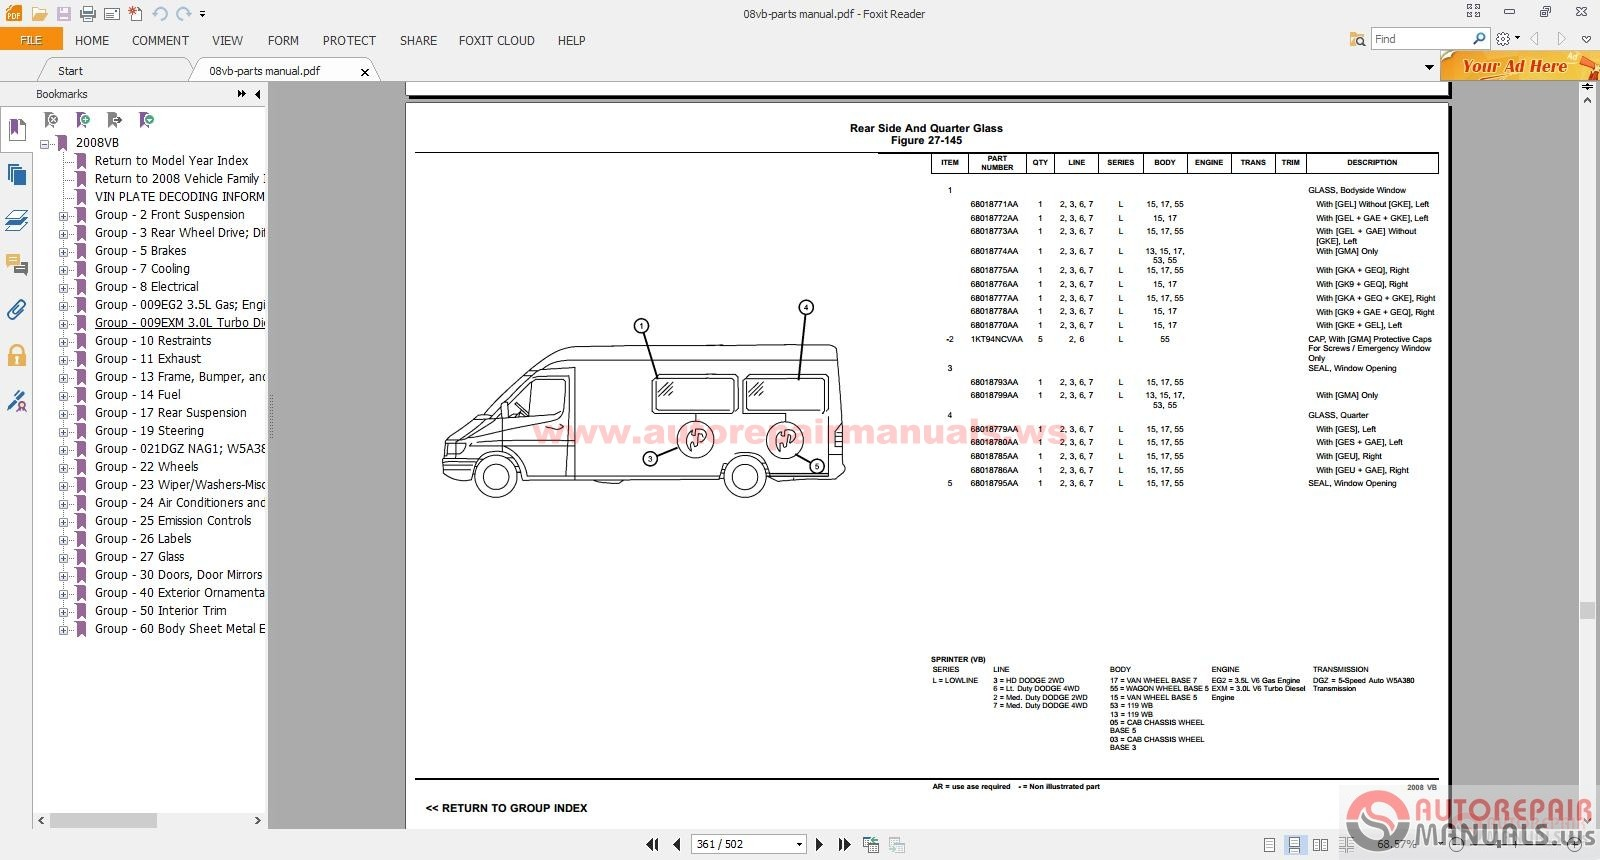 Mercedes_Sprinter_Service_Manuals_Part_Manual_Operator_Manual_2003 20114 mercedes sprinter service manuals & part manual & operator manual mercedes sprinter wiring diagram pdf at eliteediting.co